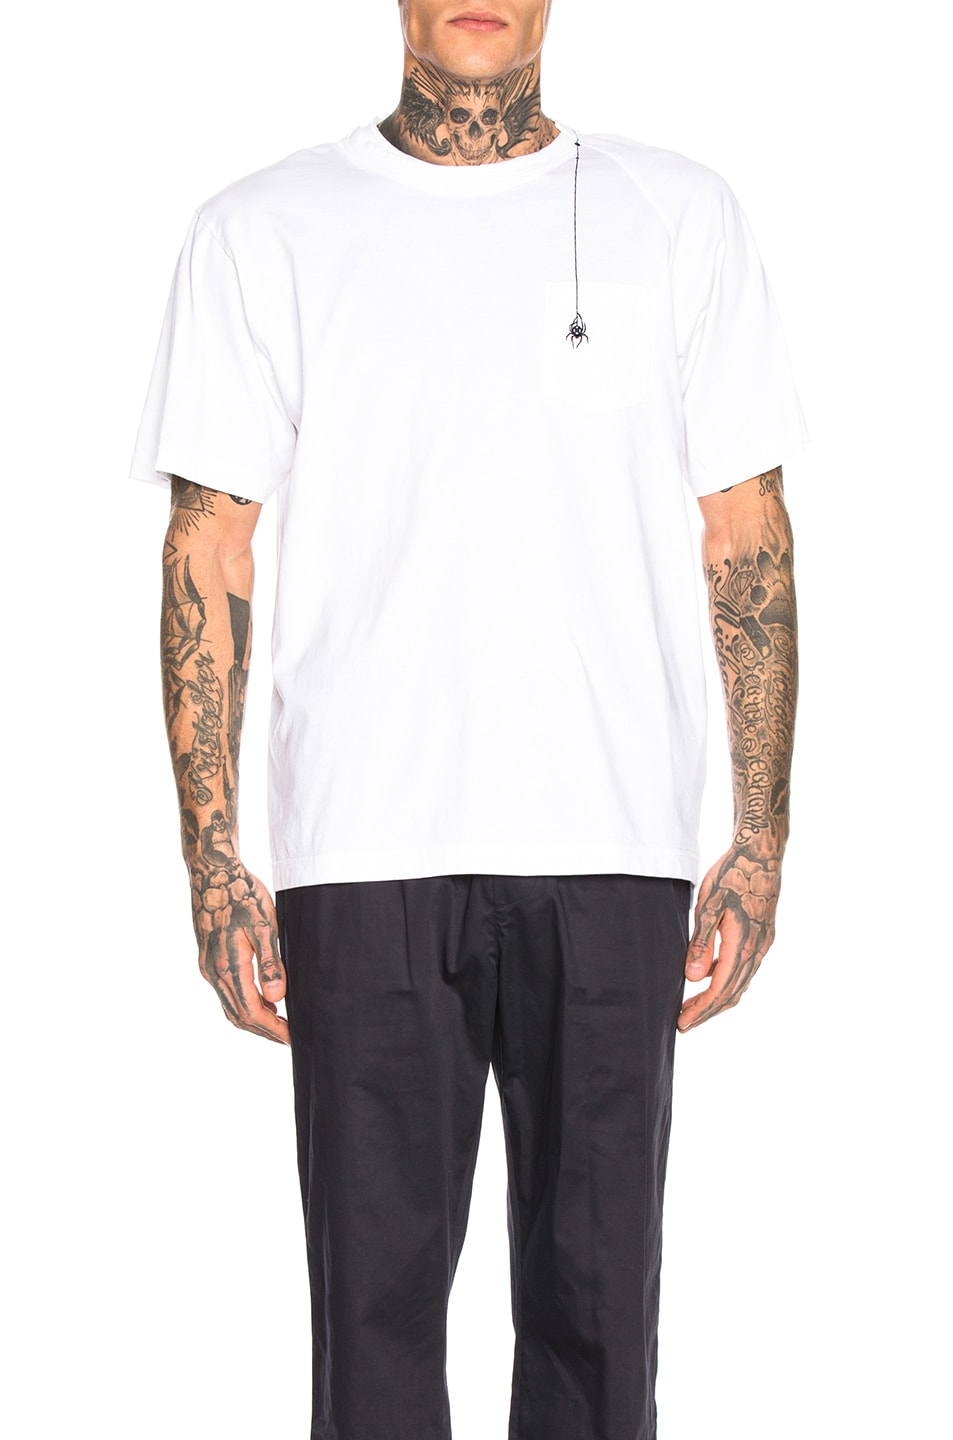 Sacai Accessories Dr. Woo Embroidered Tee